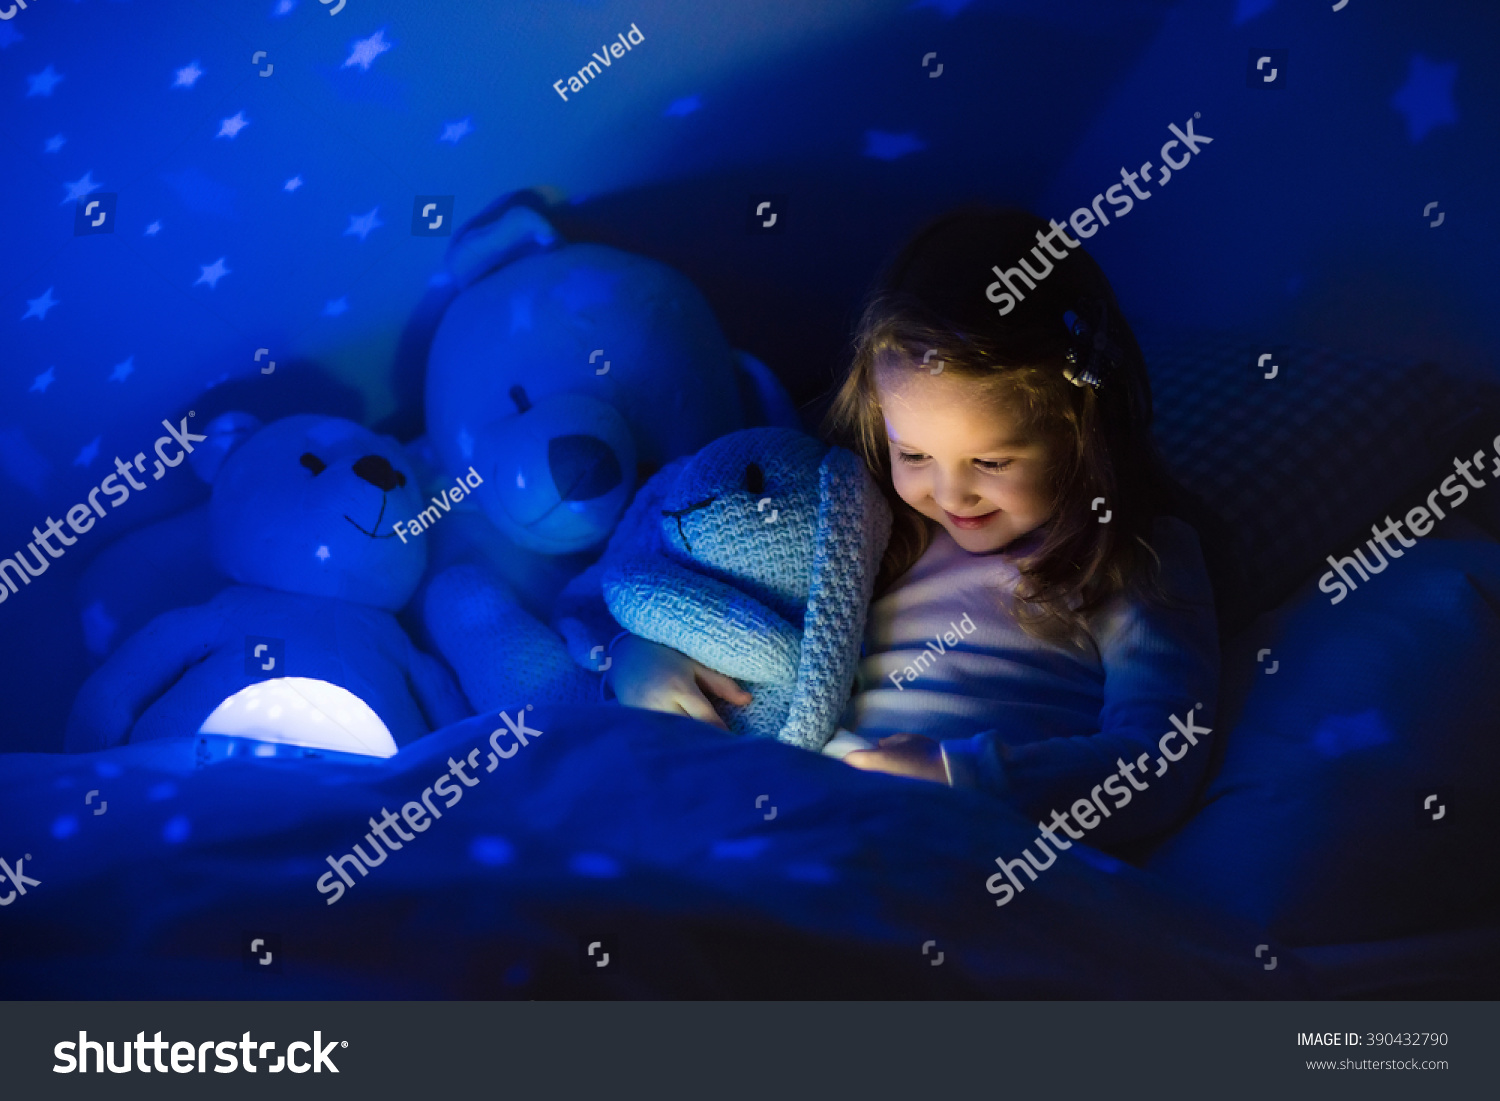 Glow Toys For Bedtime Little Girl Reading Book Bed Dark Stock Photo 390432790